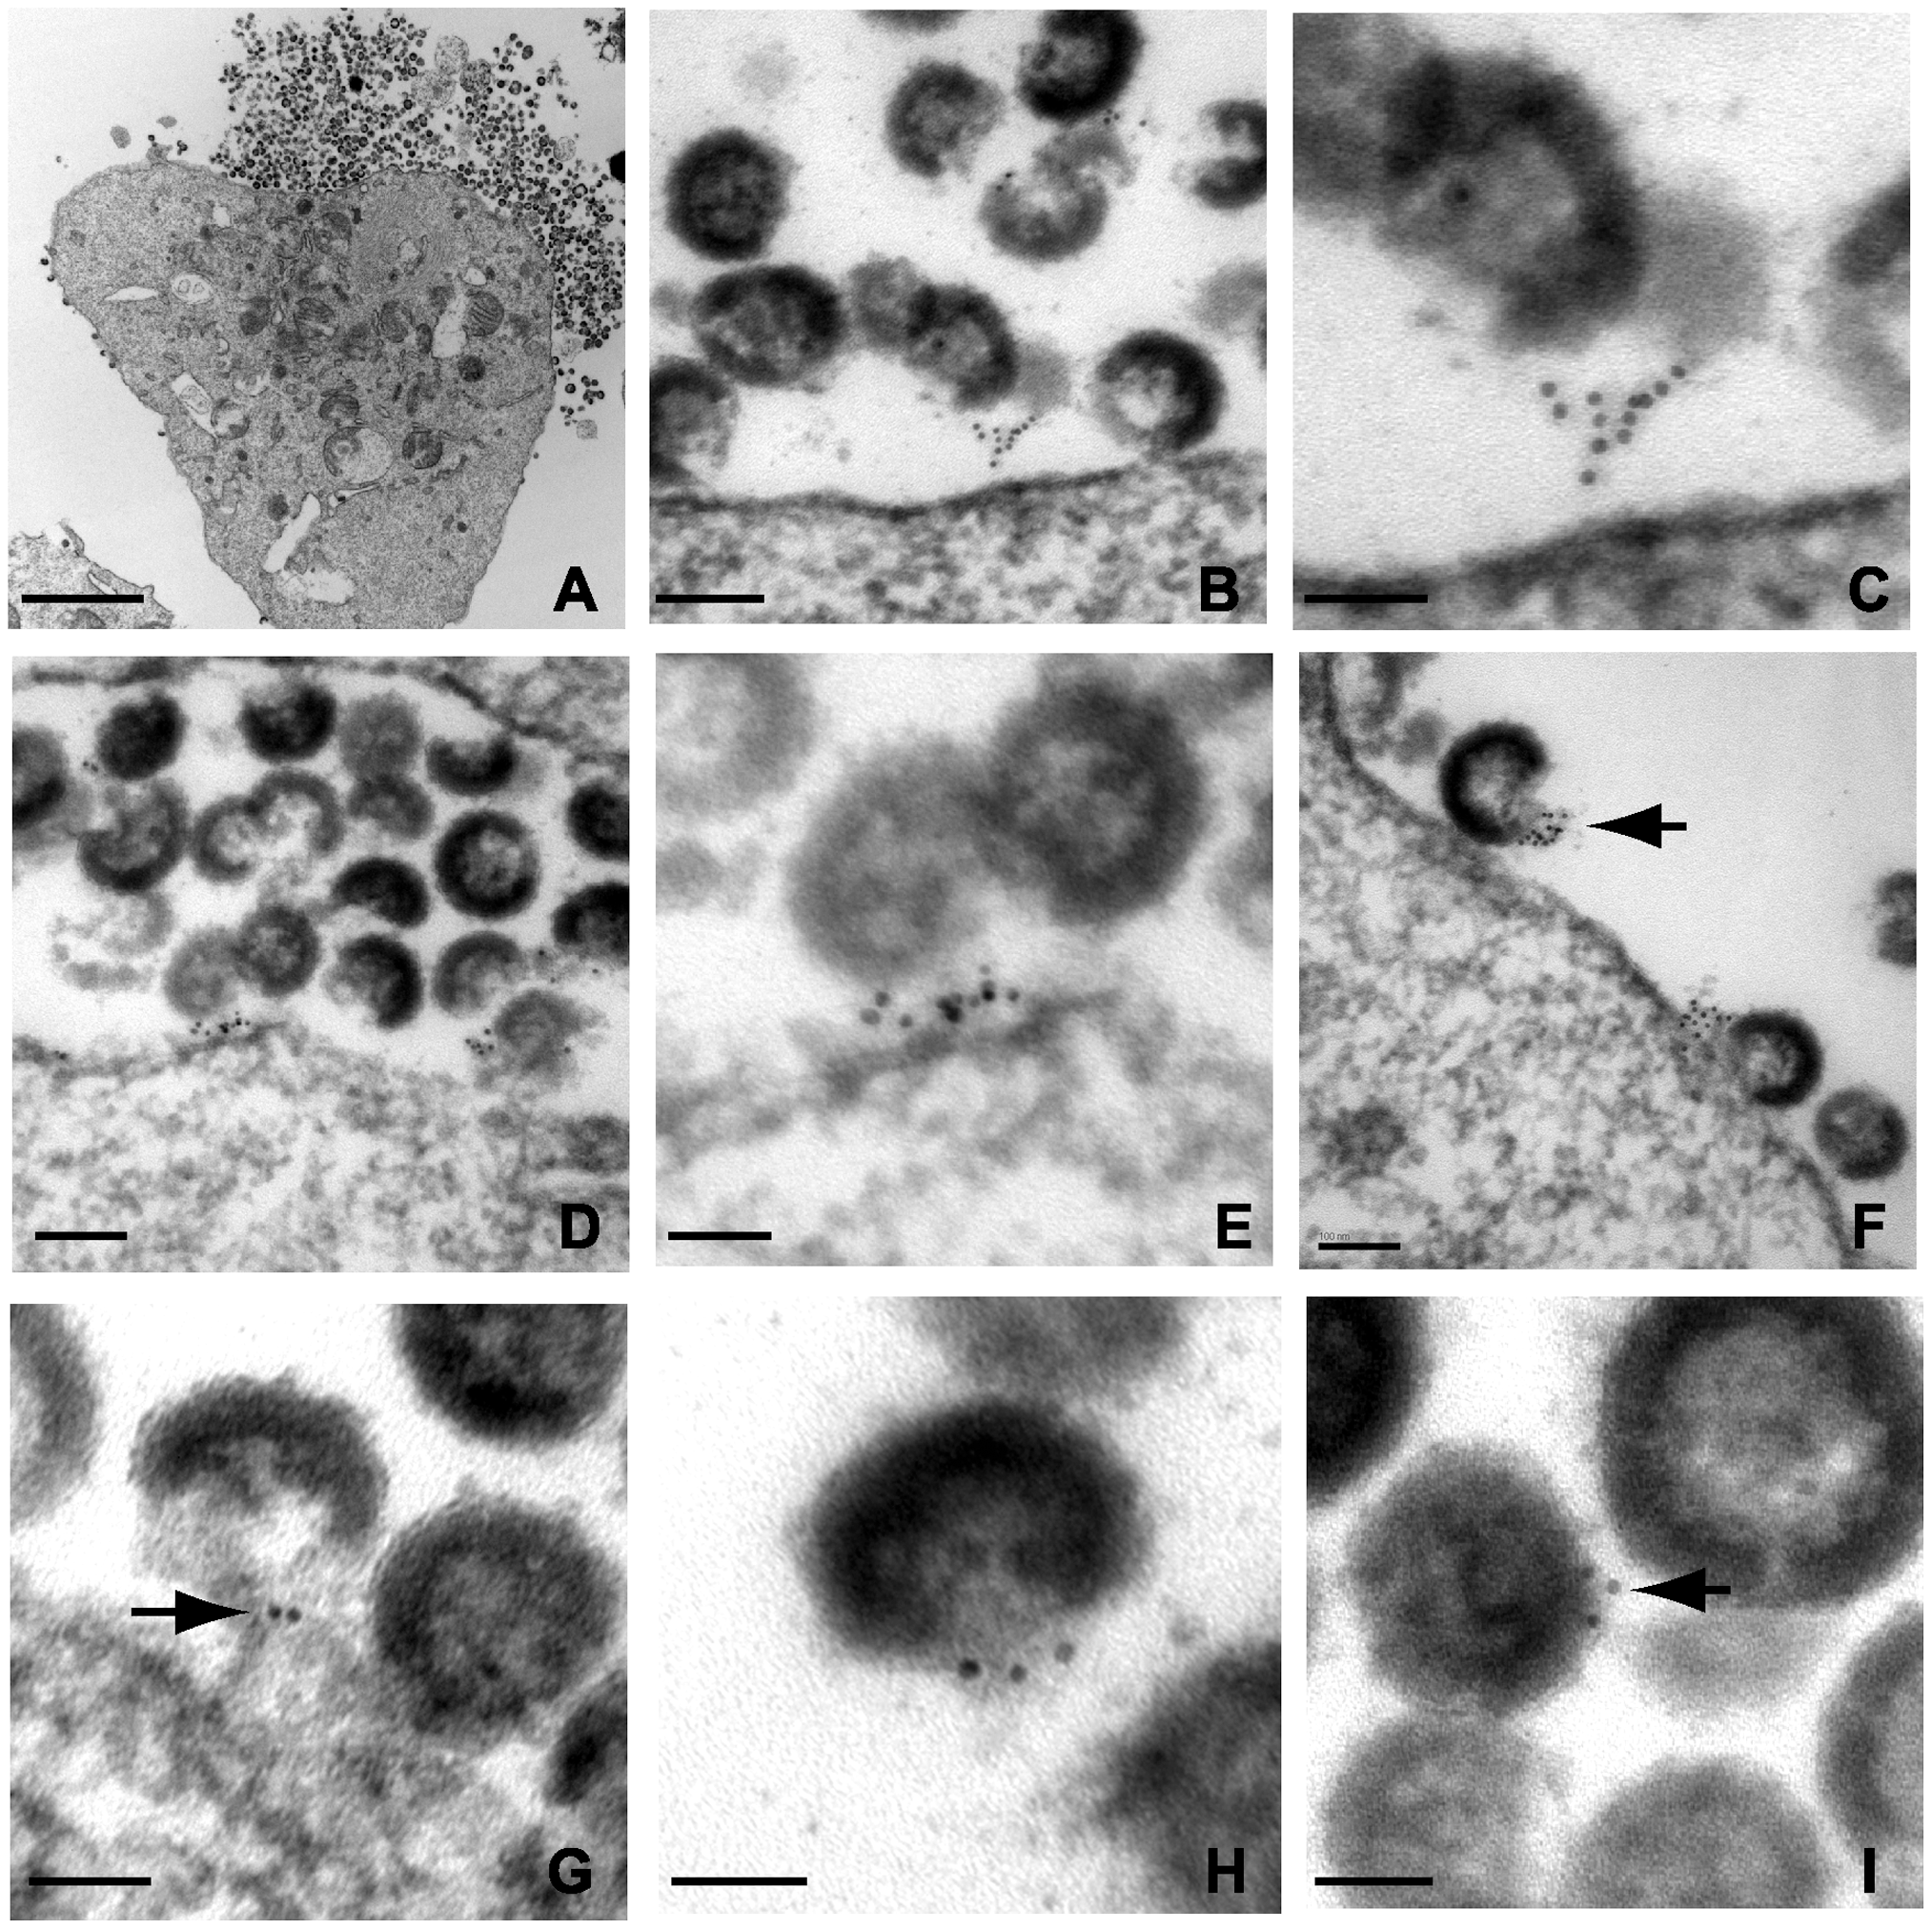 Immunoelectron micrographic analysis of tetherin of NL4.3/Udel-infected A3.01 cells treated with indinavir; labeling at site of particle budding.